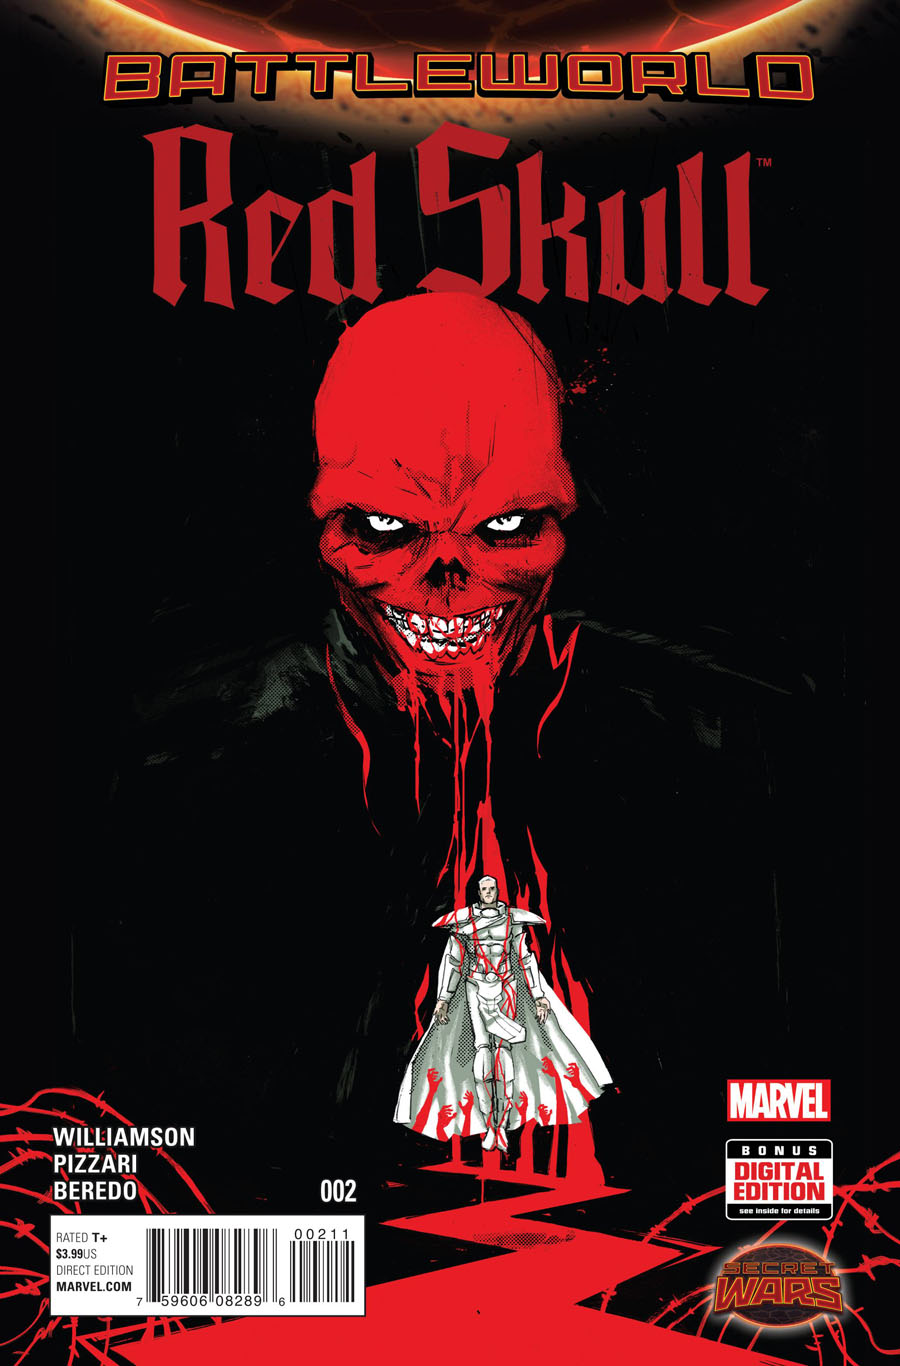 Red Skull Vol 2 #2 (Secret Wars Battleworld Tie-In)